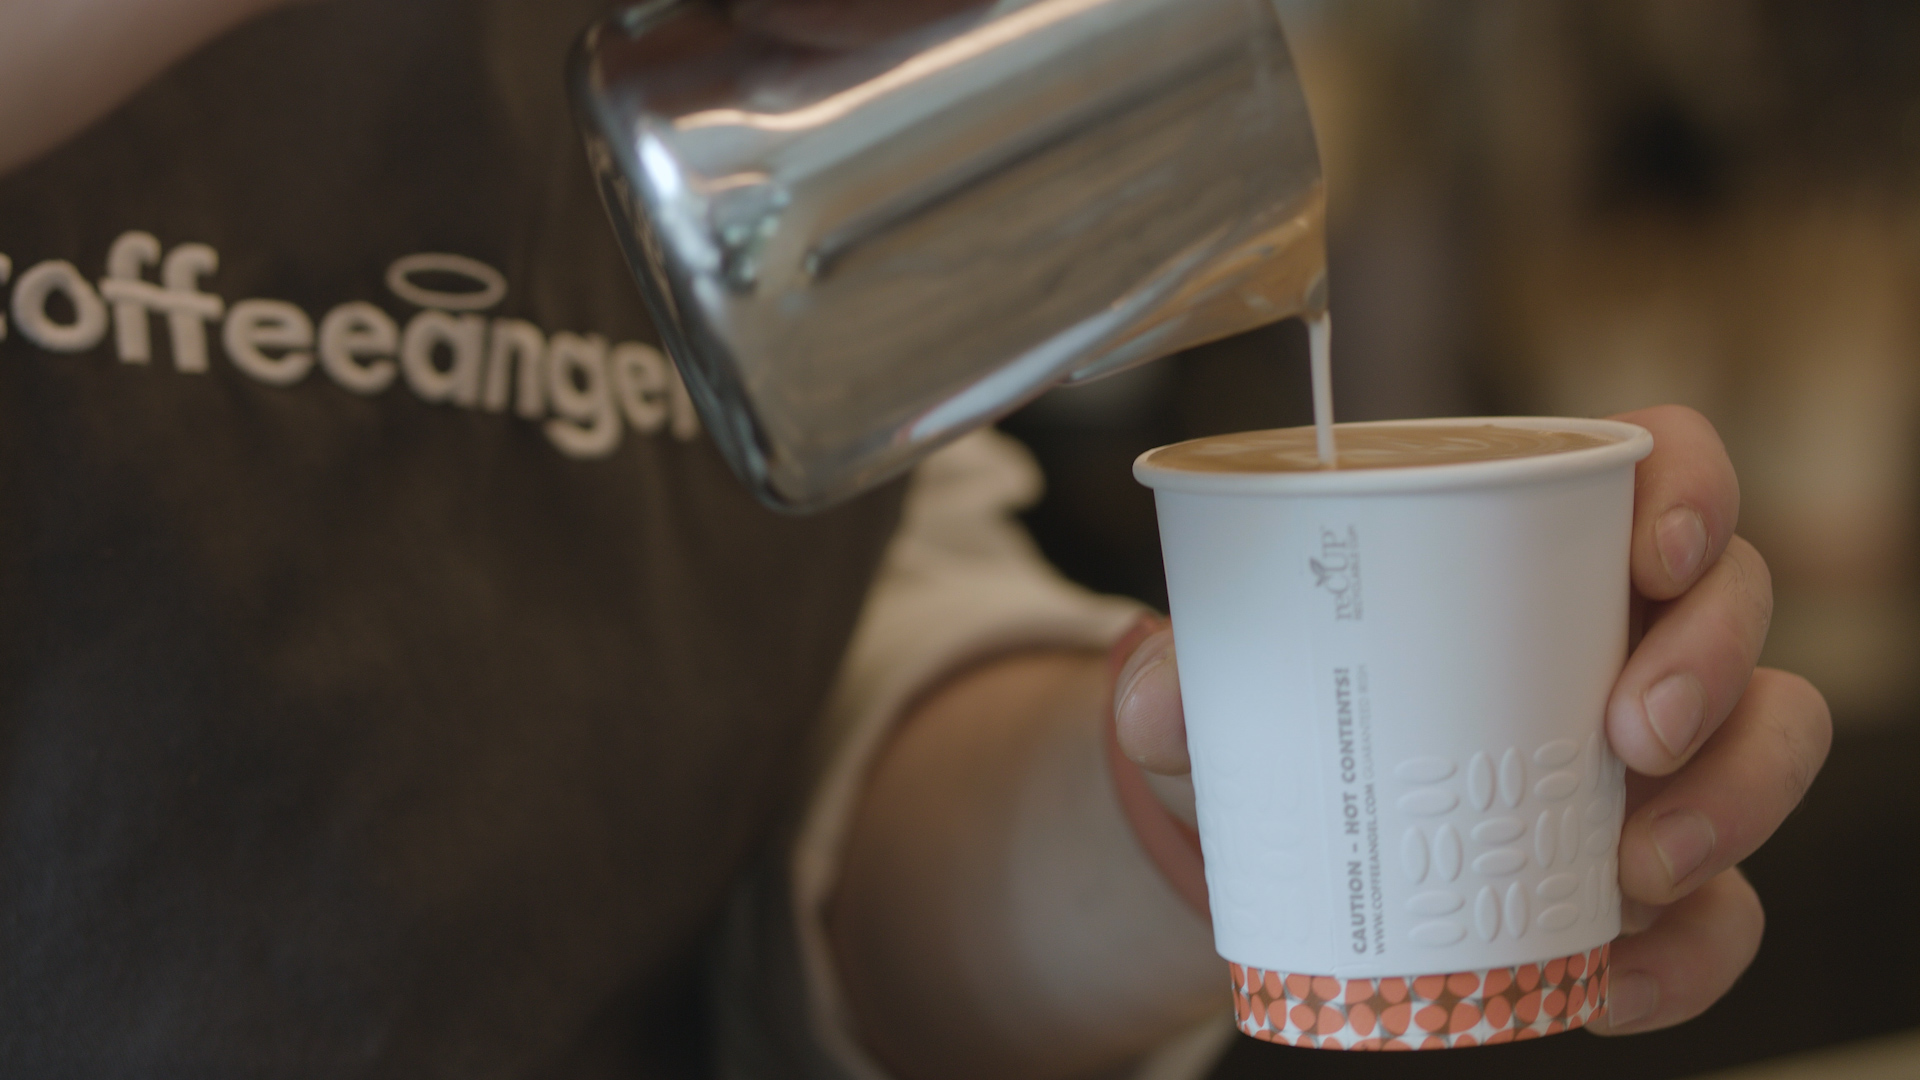 Coffeeangel, Dublin talk about how talech has helped the growth of the business